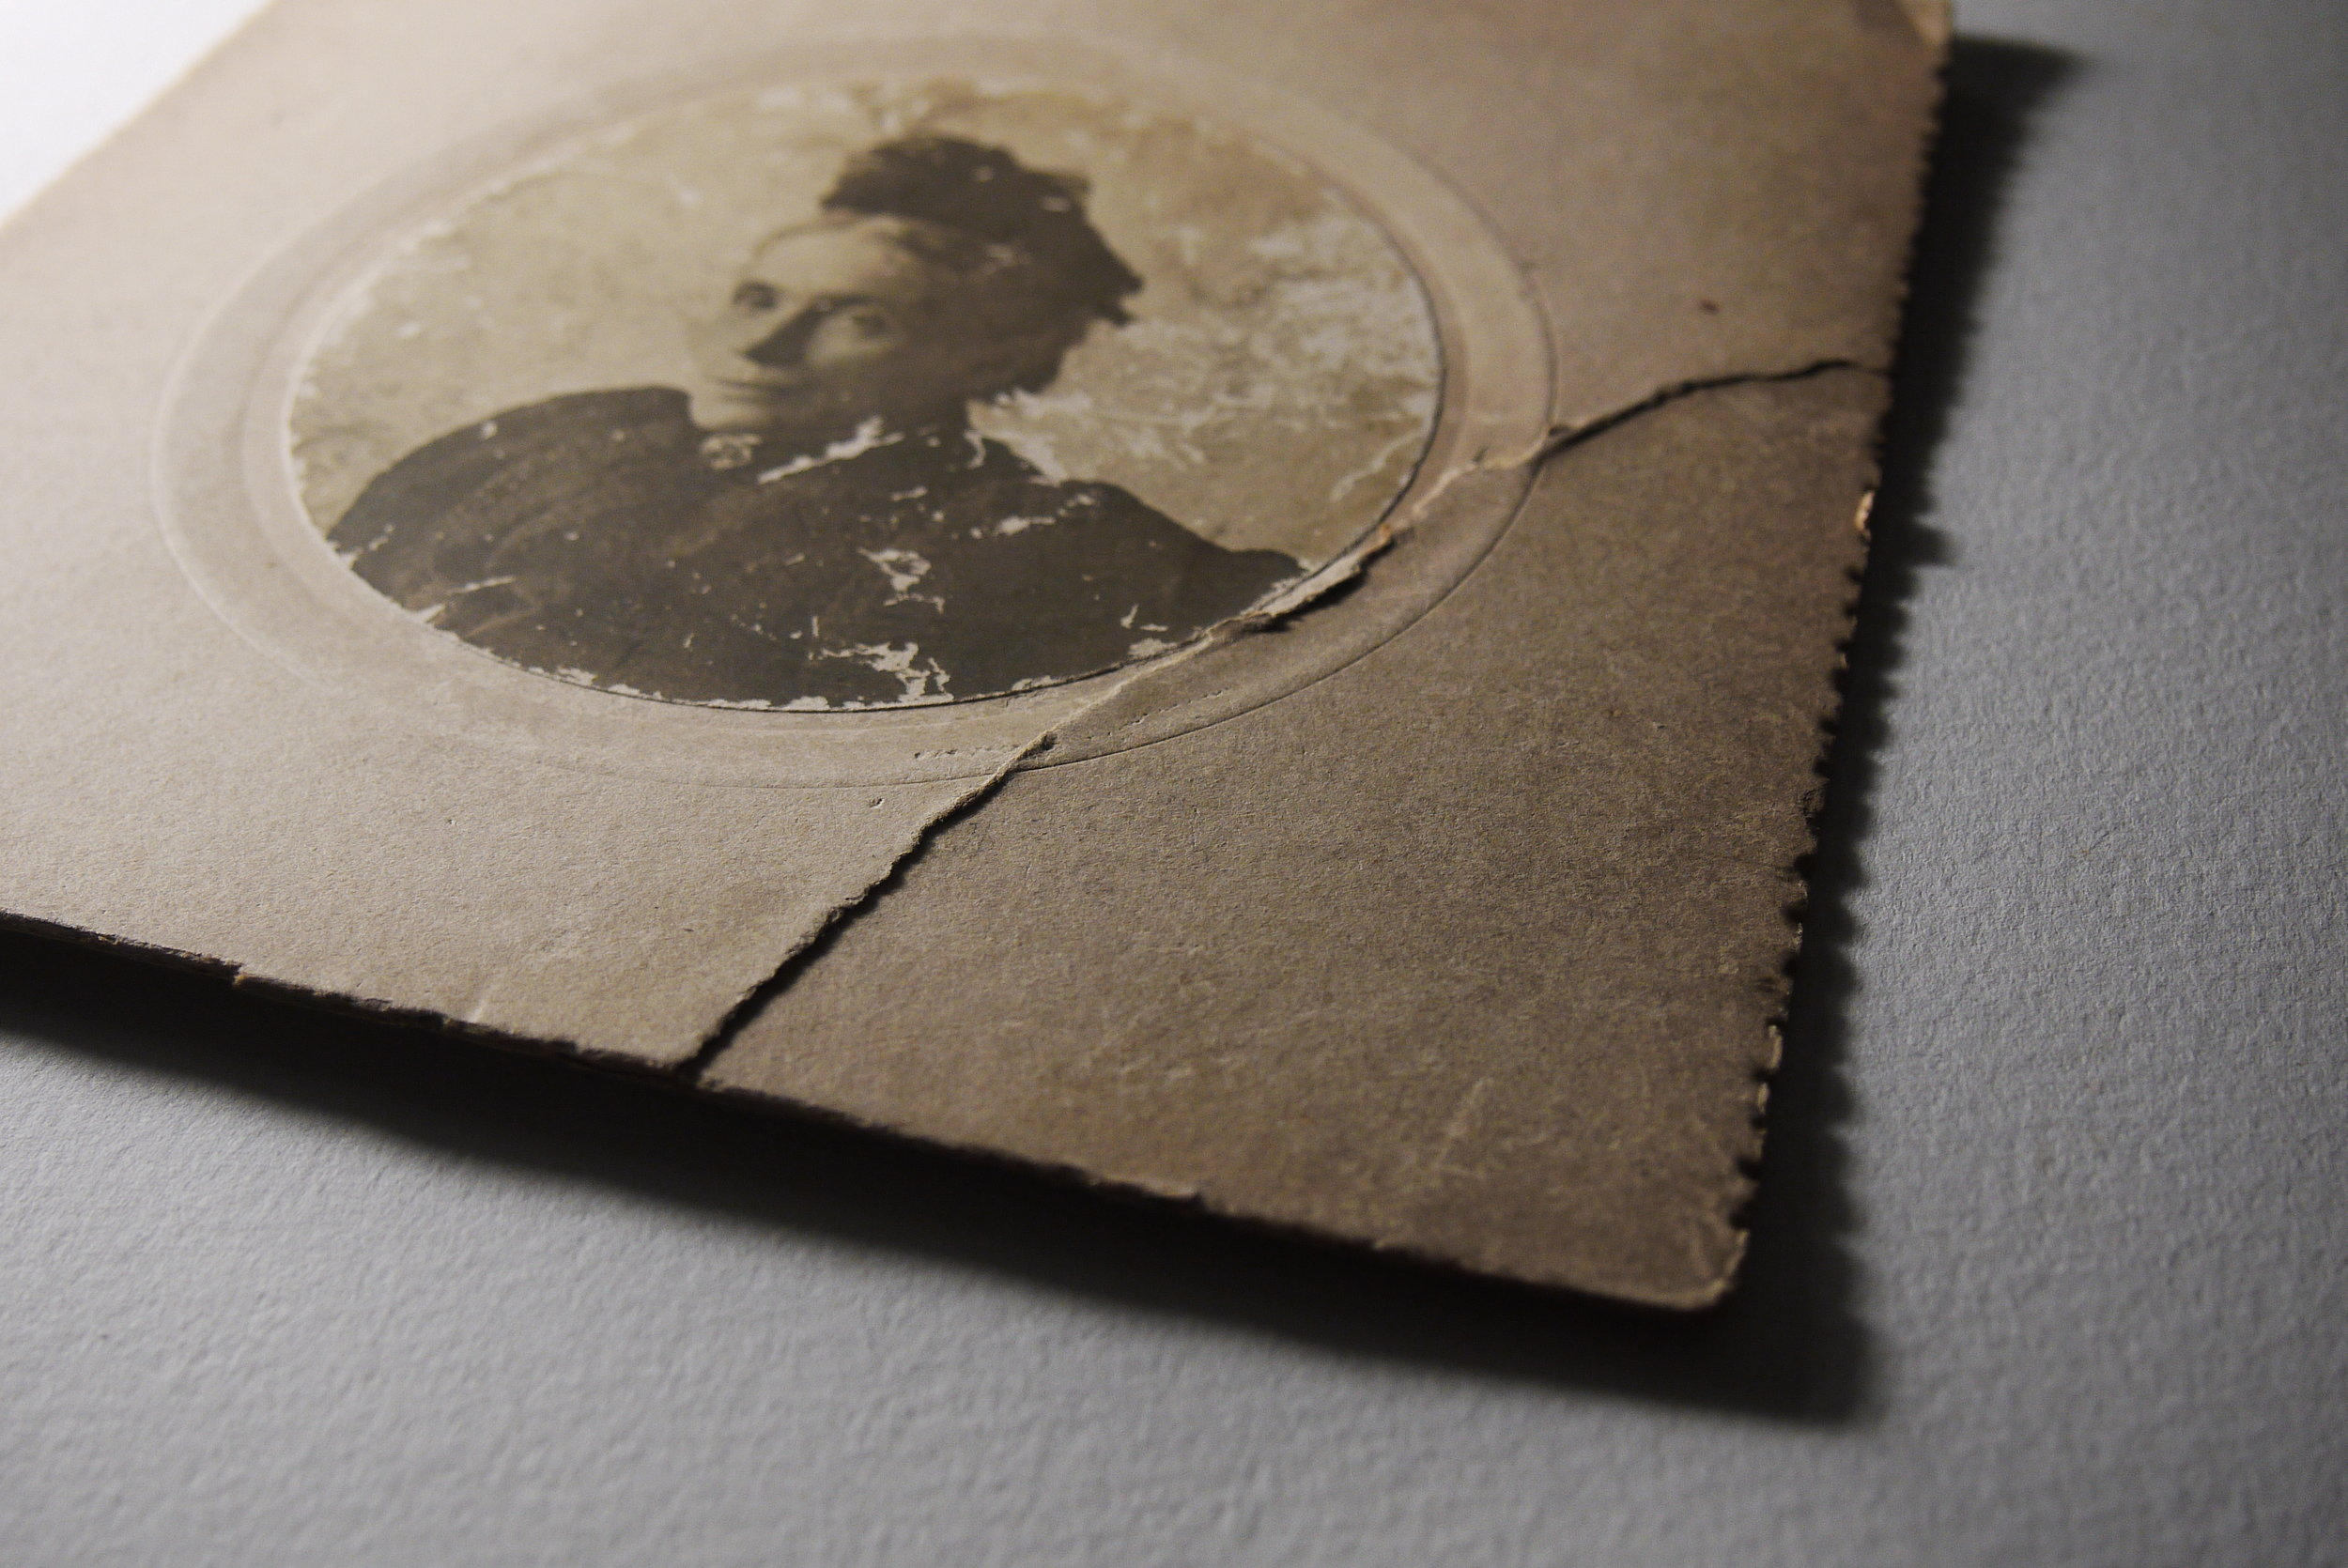 Damaged antique photograph in raking light.